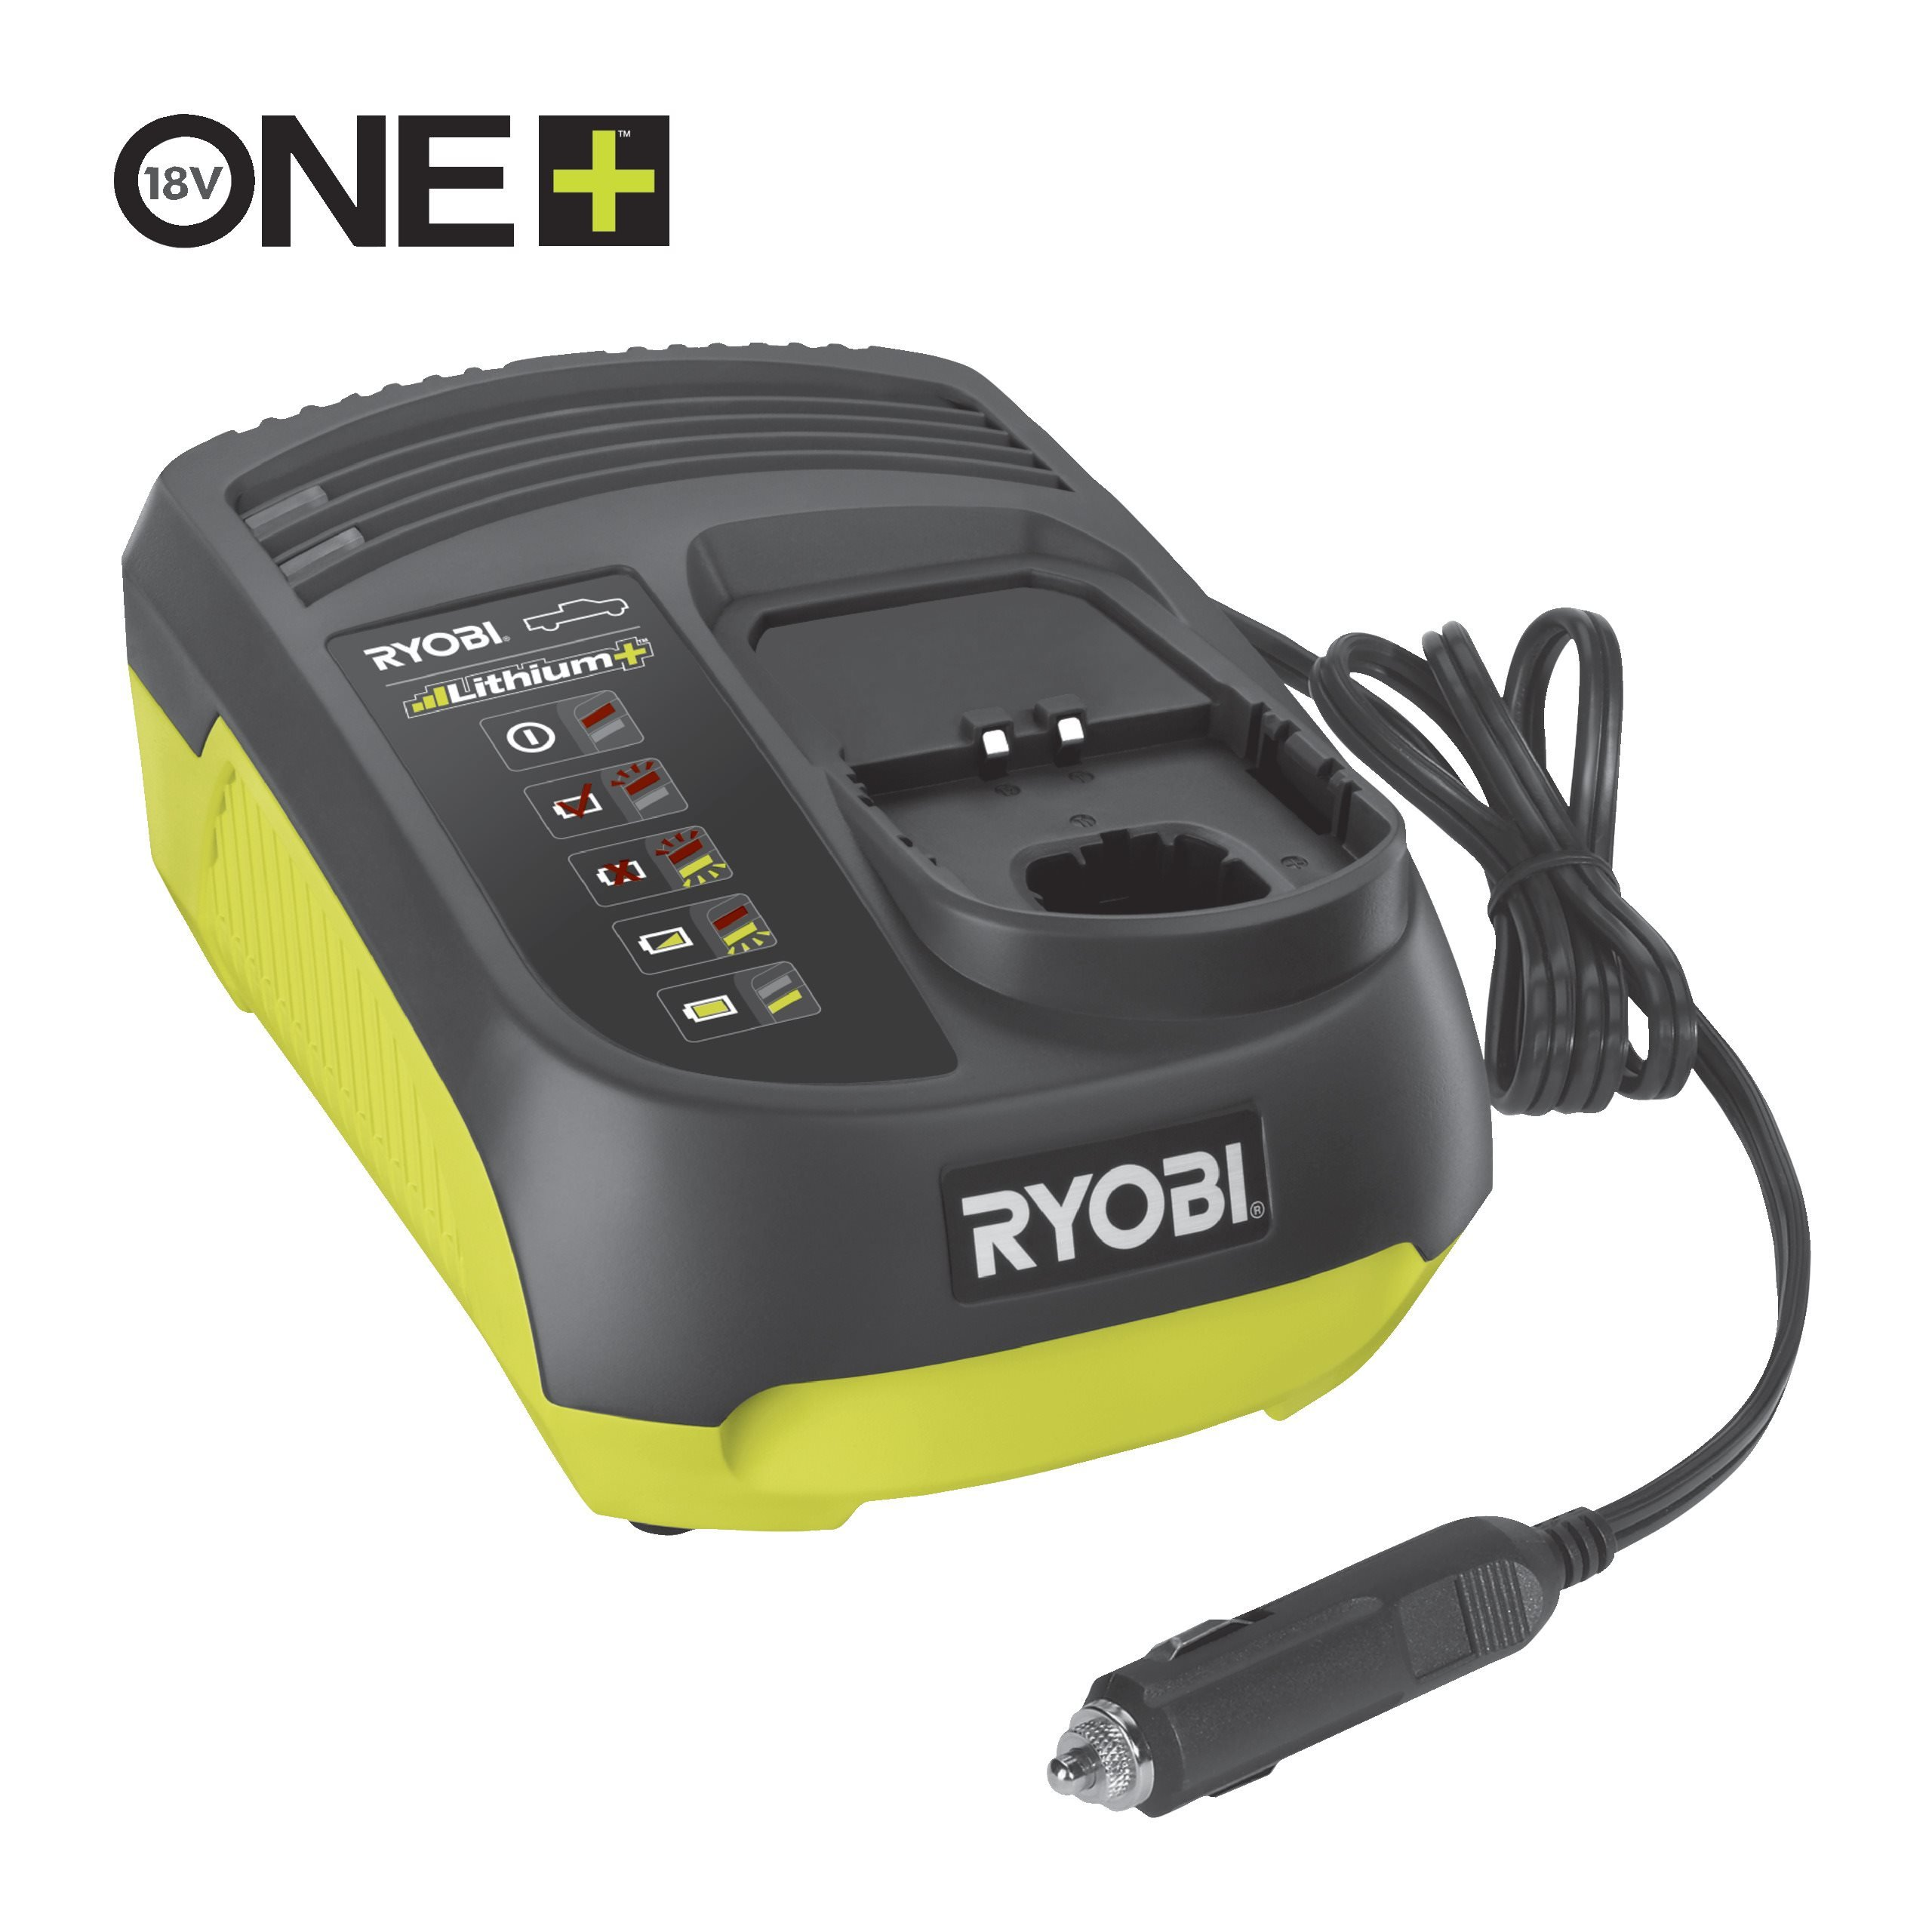 18V ONE+™ In-Car Battery Charger